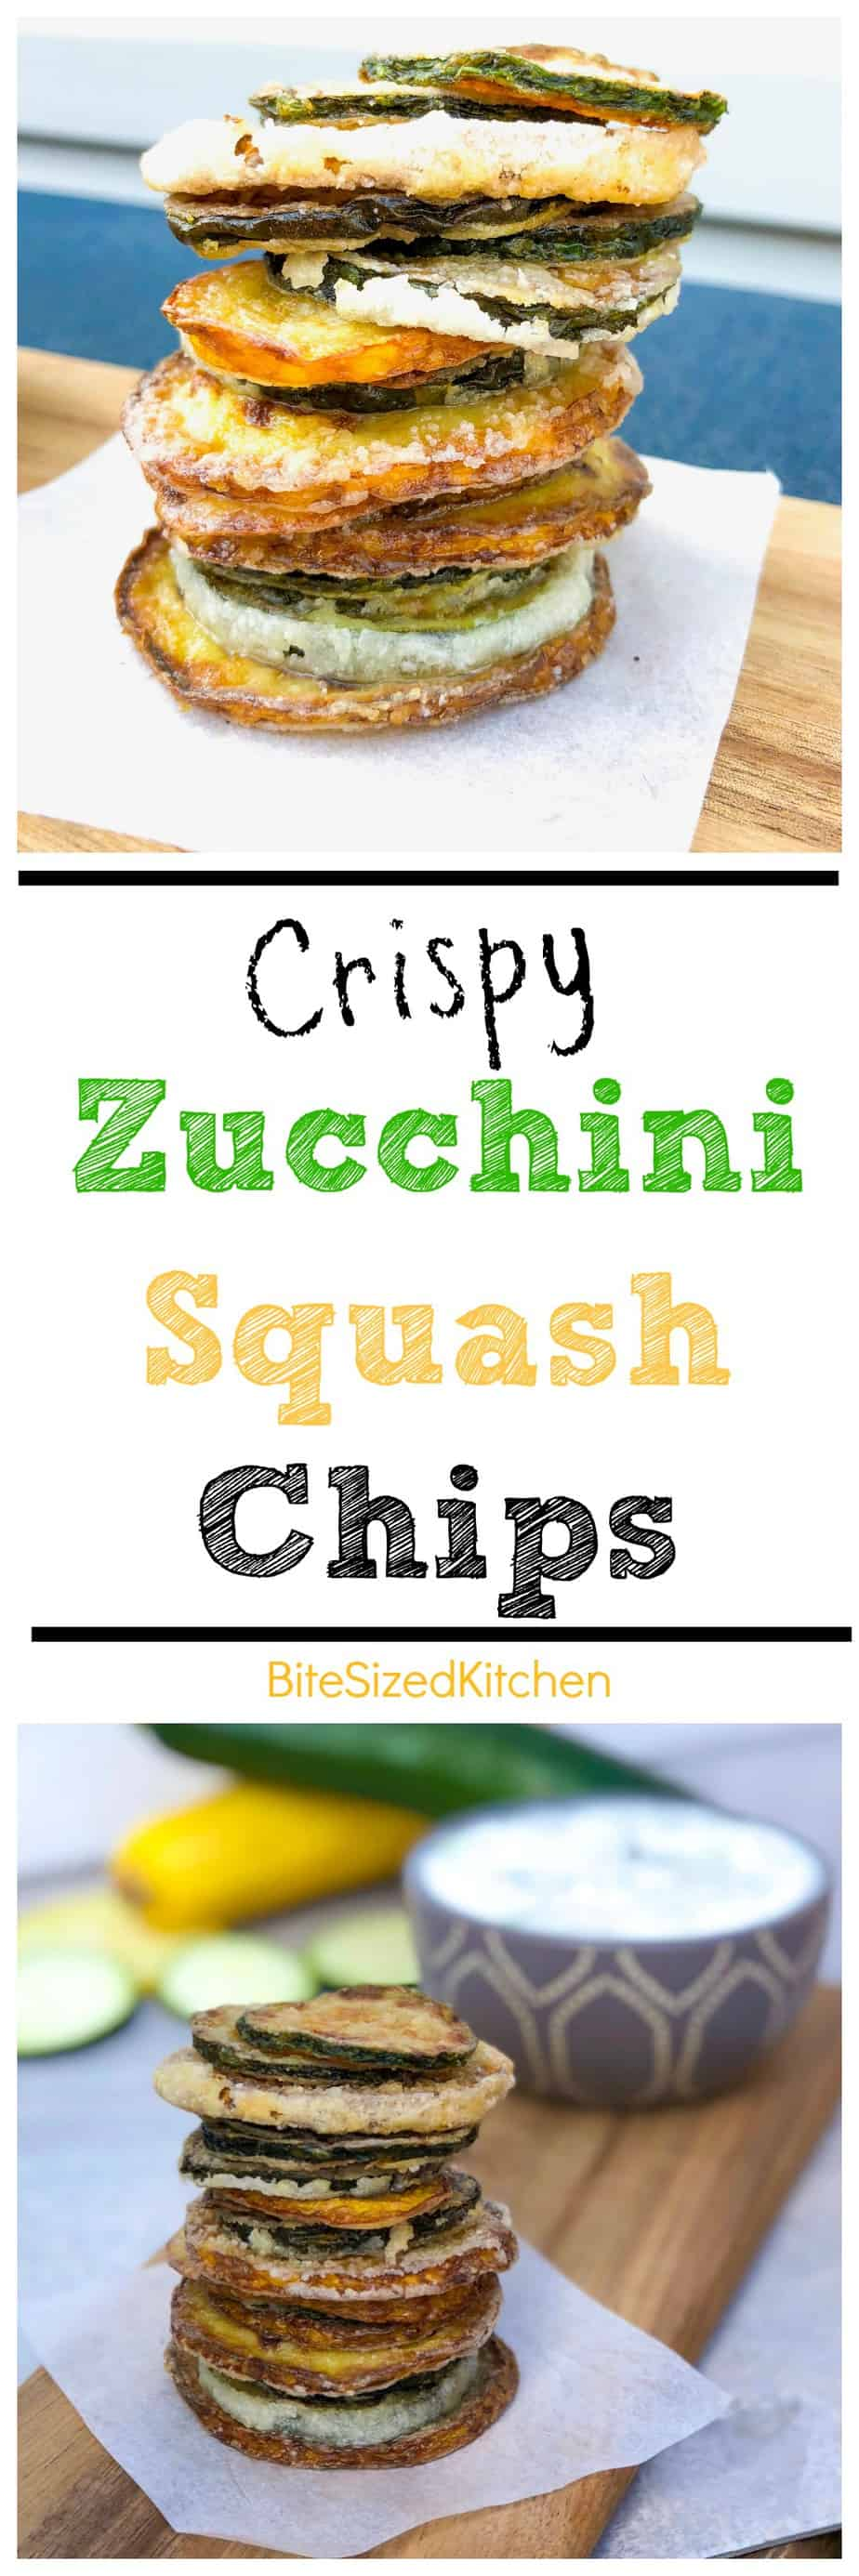 Crispy Zucchini Chips | Fried Zucchini Chips | Easy Zucchini Chips | Tasty Quick Zucchini Chips | Crunchy Zucchini Chips | Gluten free Chips | The best zucchini chips | Crispy fried squash chips | Veggie Chips